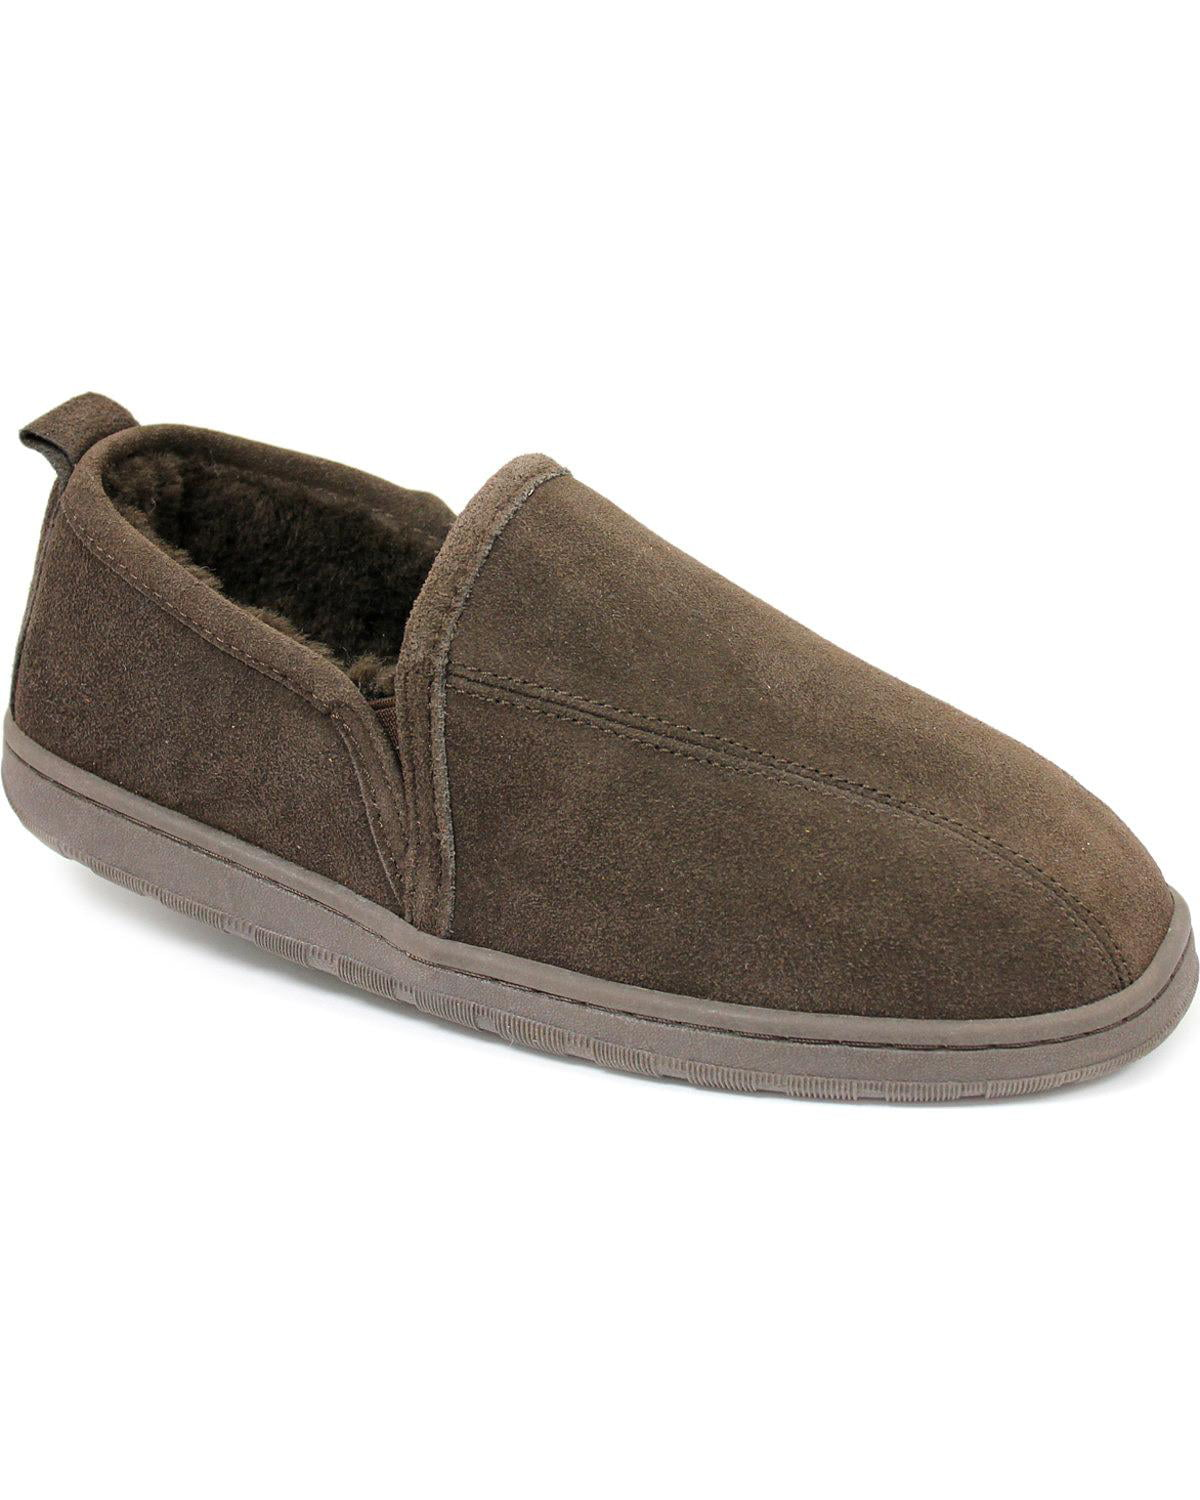 Lamo Footwear Men's Classic Romeo Slippers P104m-92 by Lamo Footwear